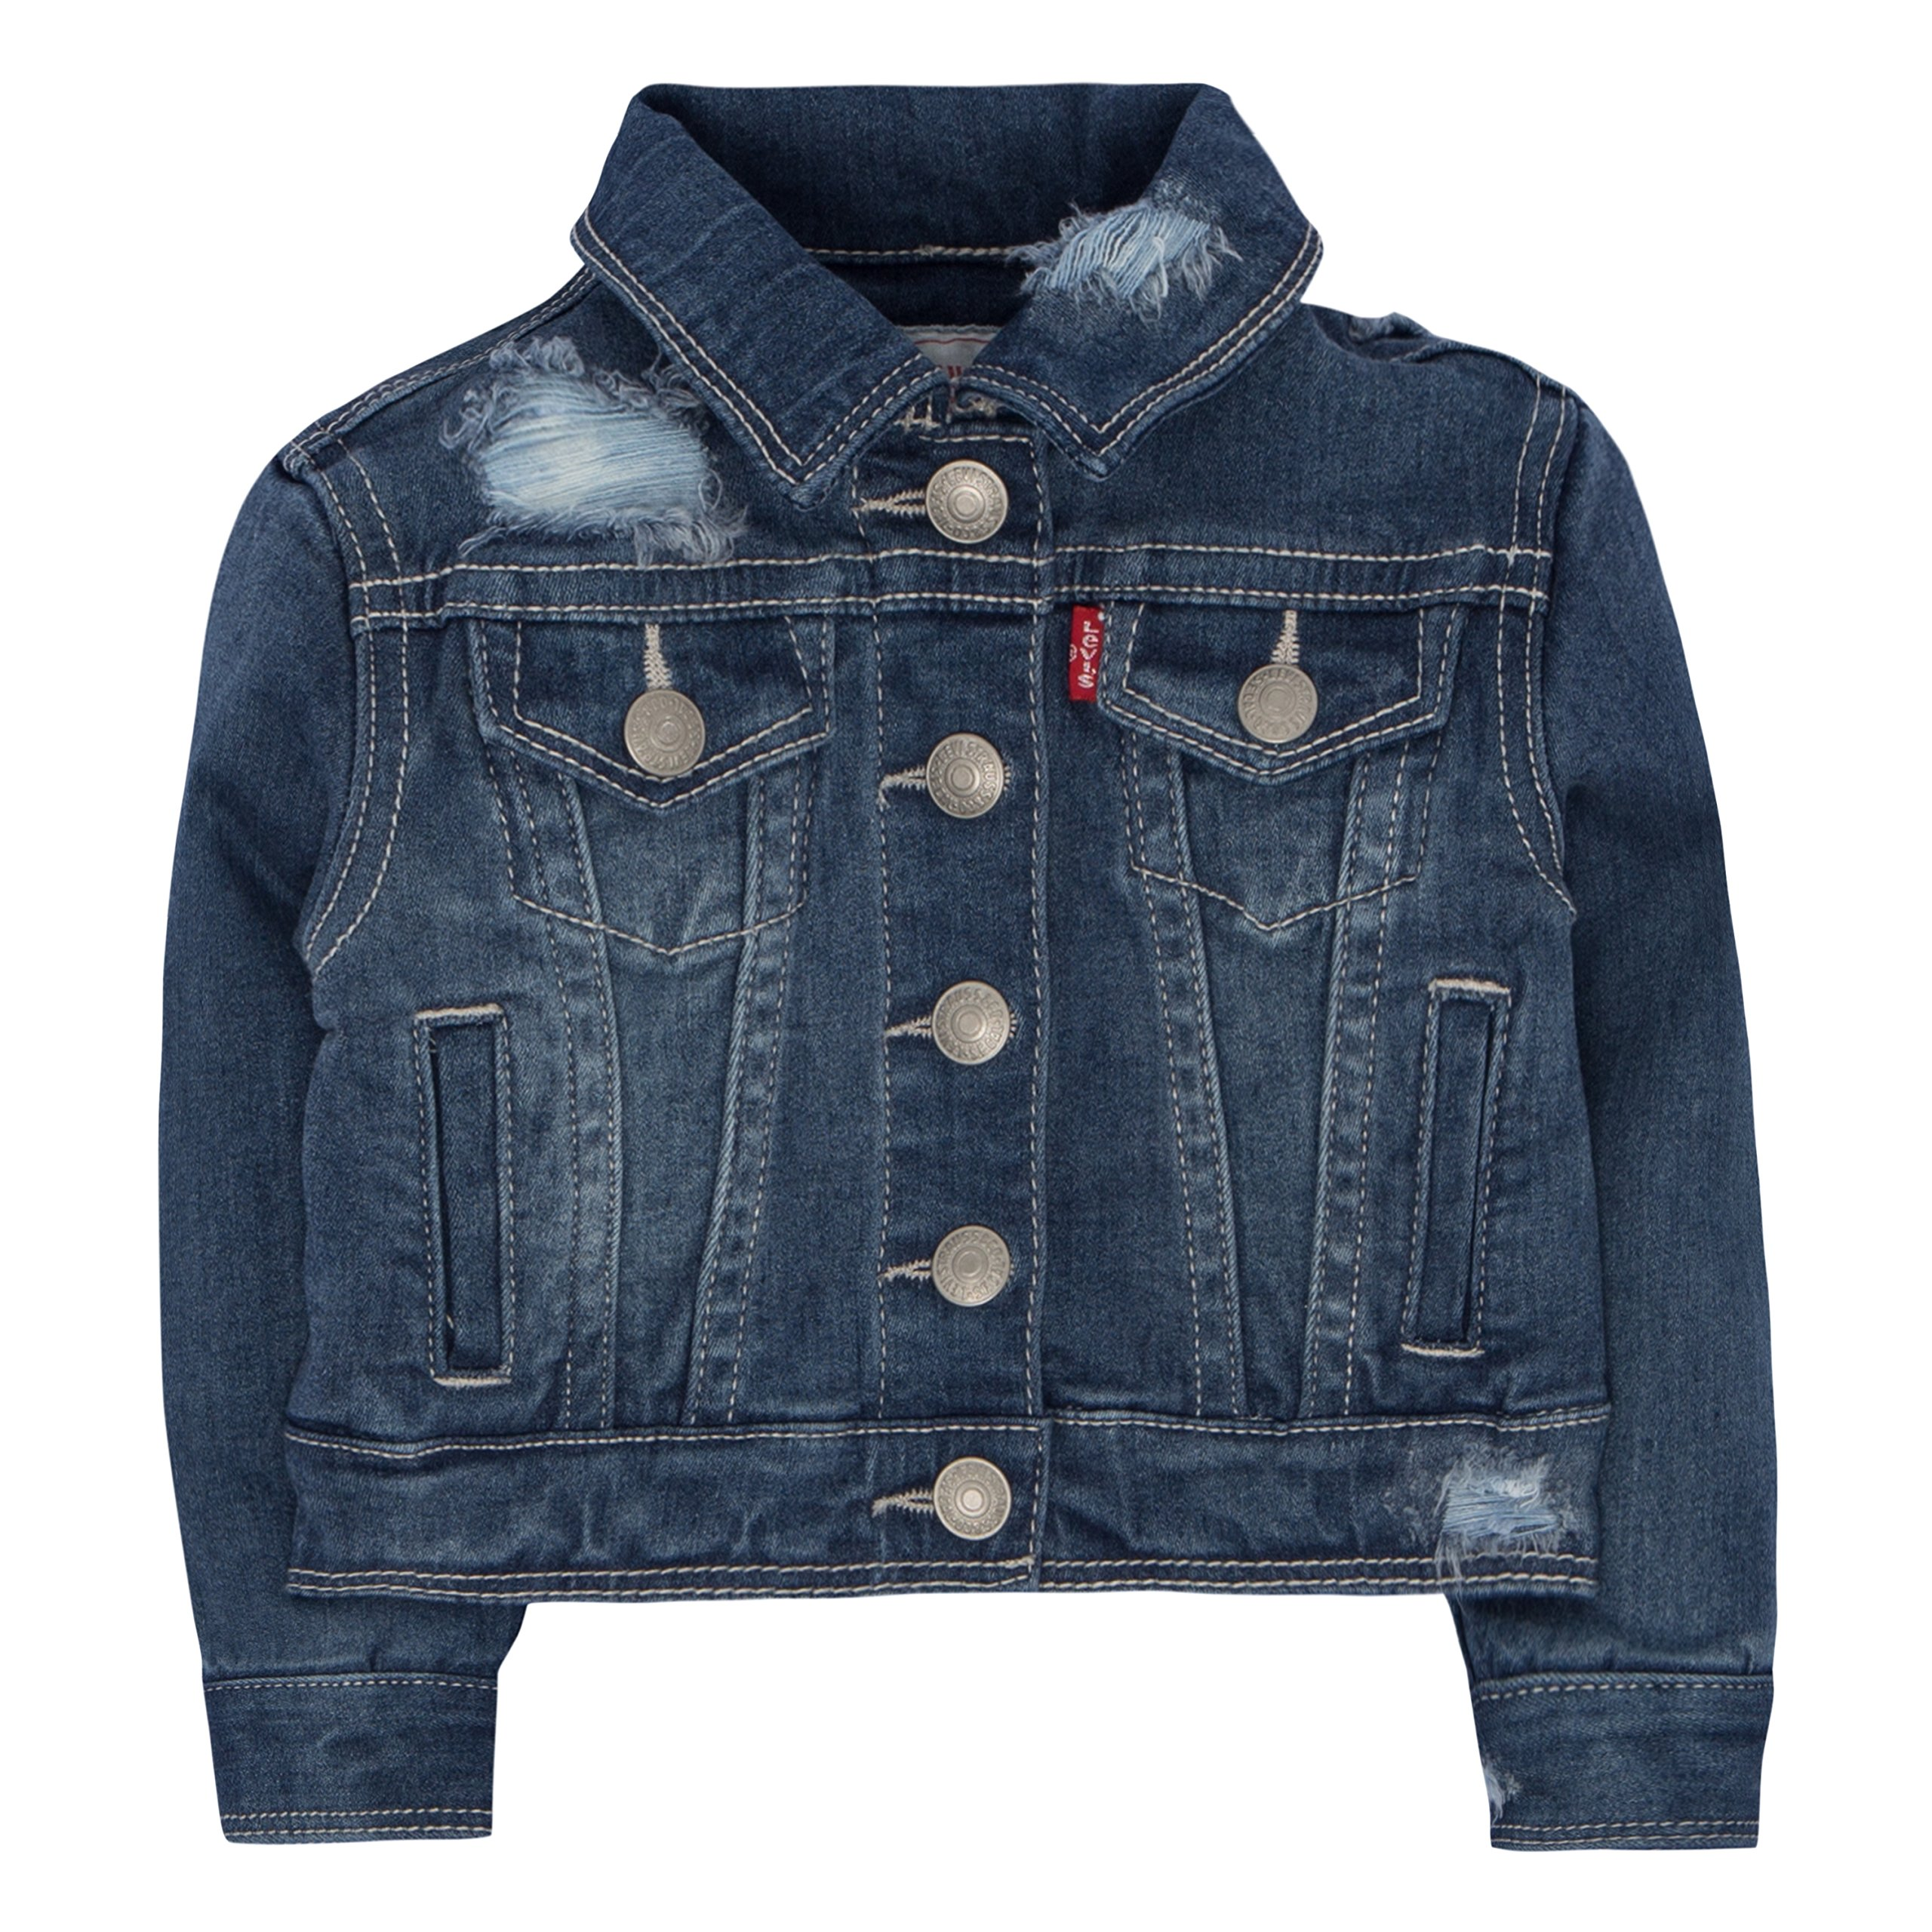 Levi's Baby Girls' Trucker Jacket, Vintage Waters, 24M by Levi's